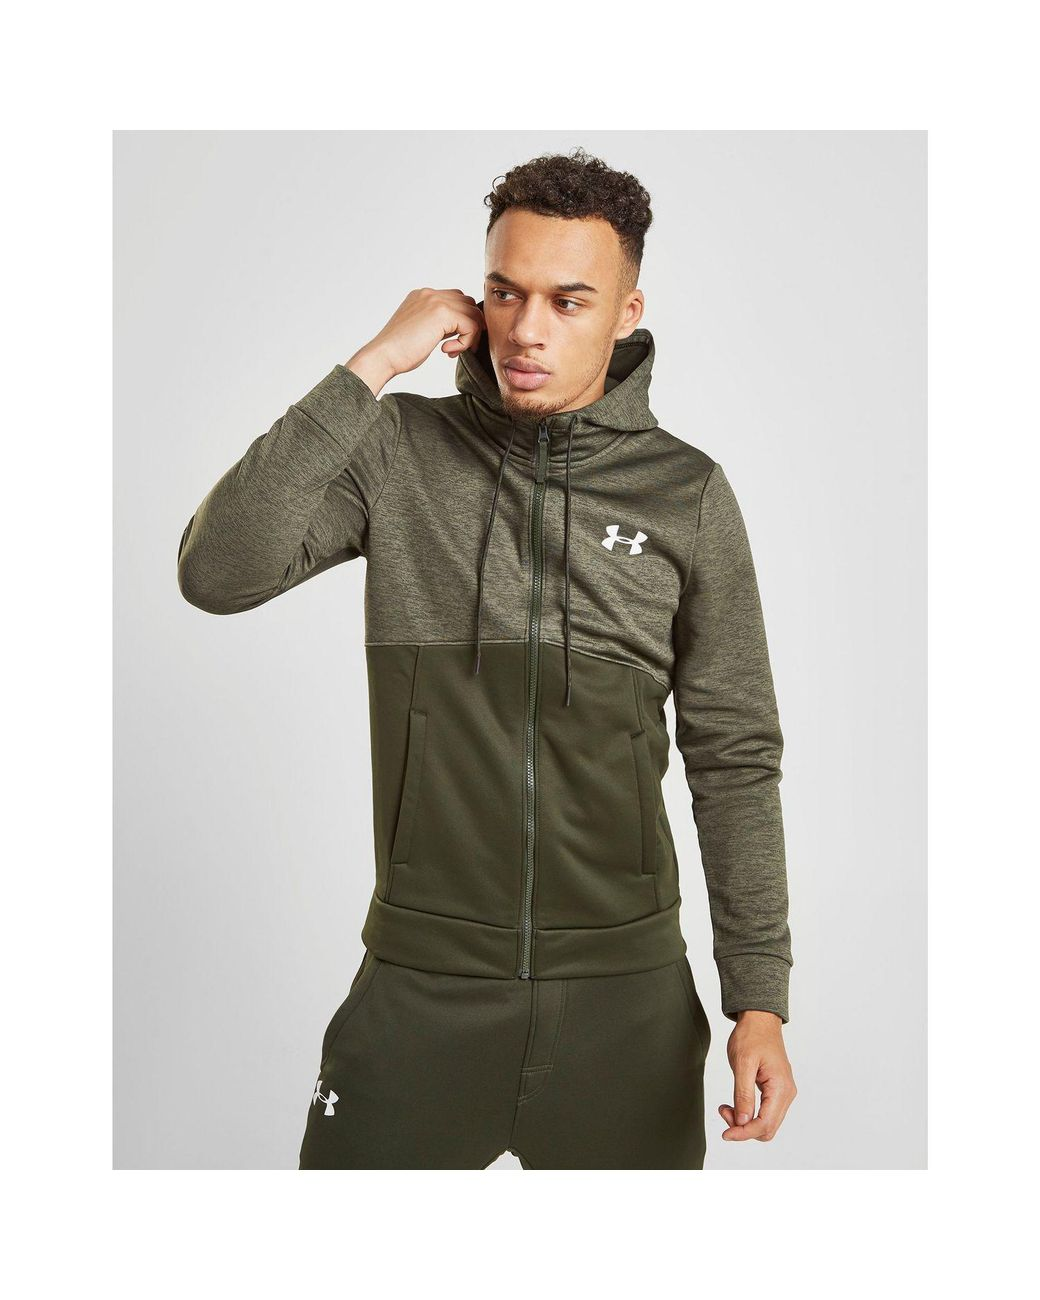 9ab1bf9c4a7 Lyst - Under Armour Fleece Full Zip Hoodie in Green for Men - Save 1%